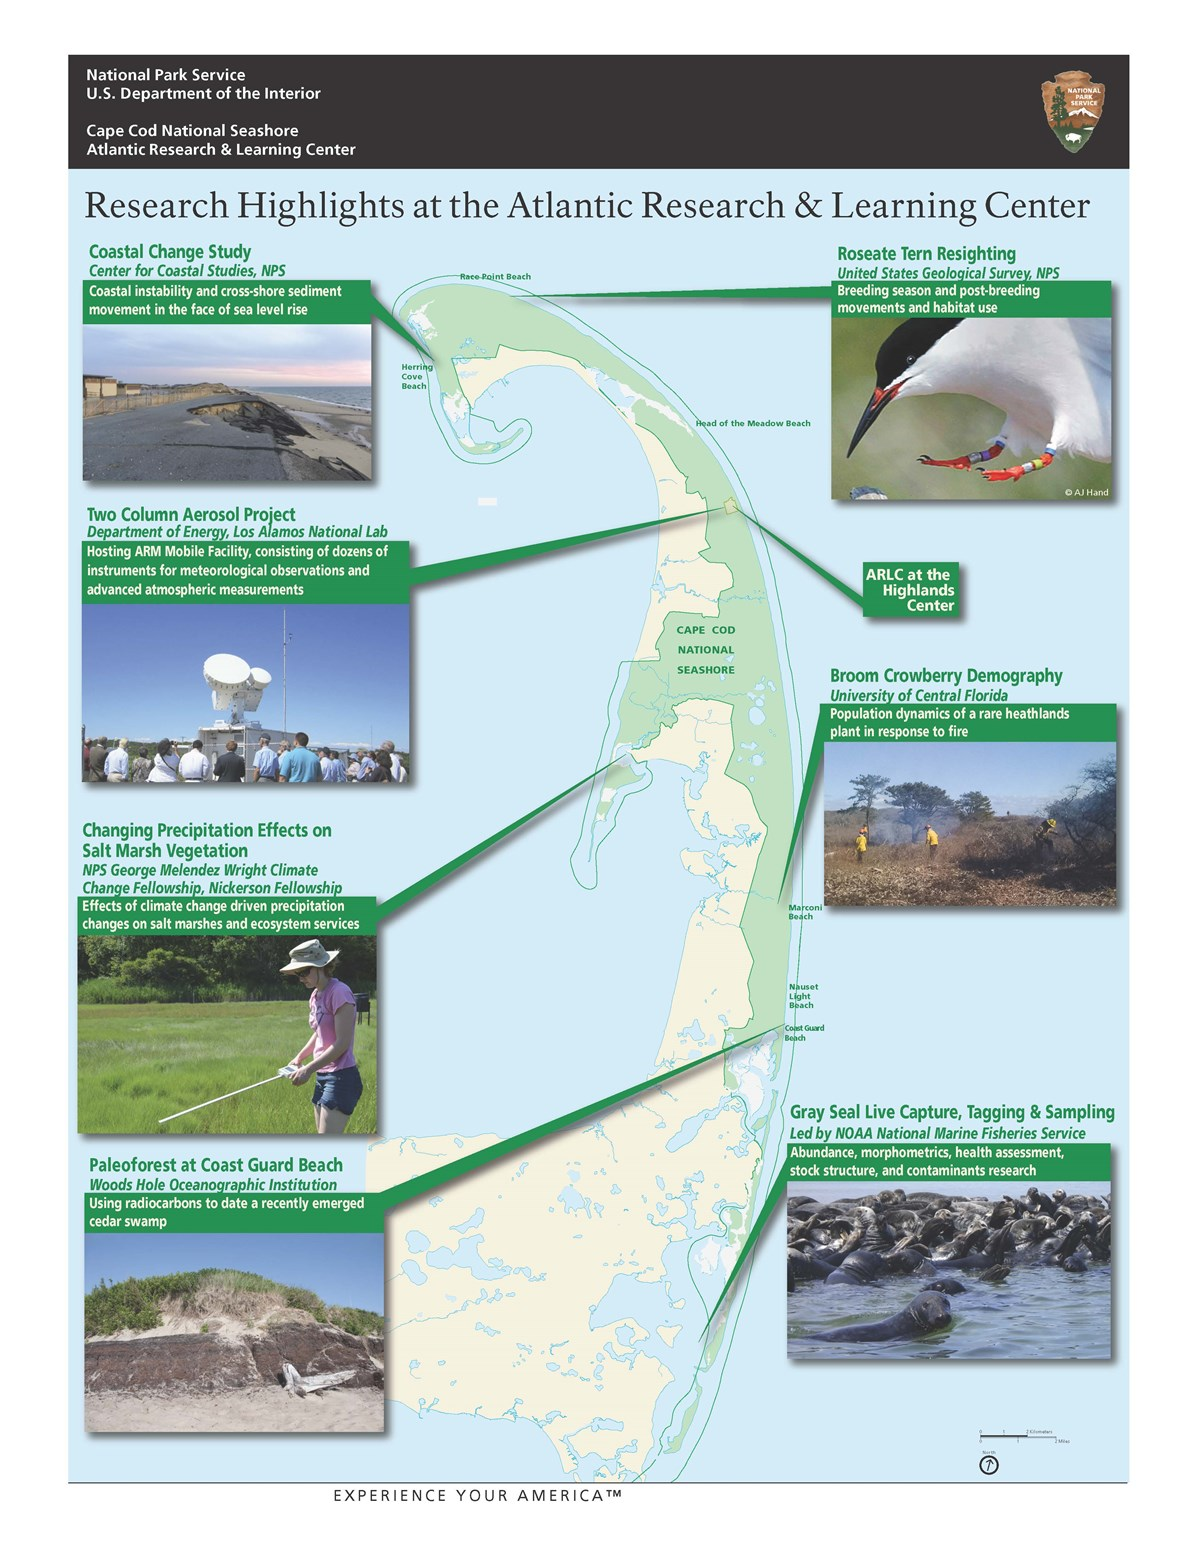 A map of the outer area of Cape Cod, curled like a flexed arm, with images depicting a variety of researchers in the field.